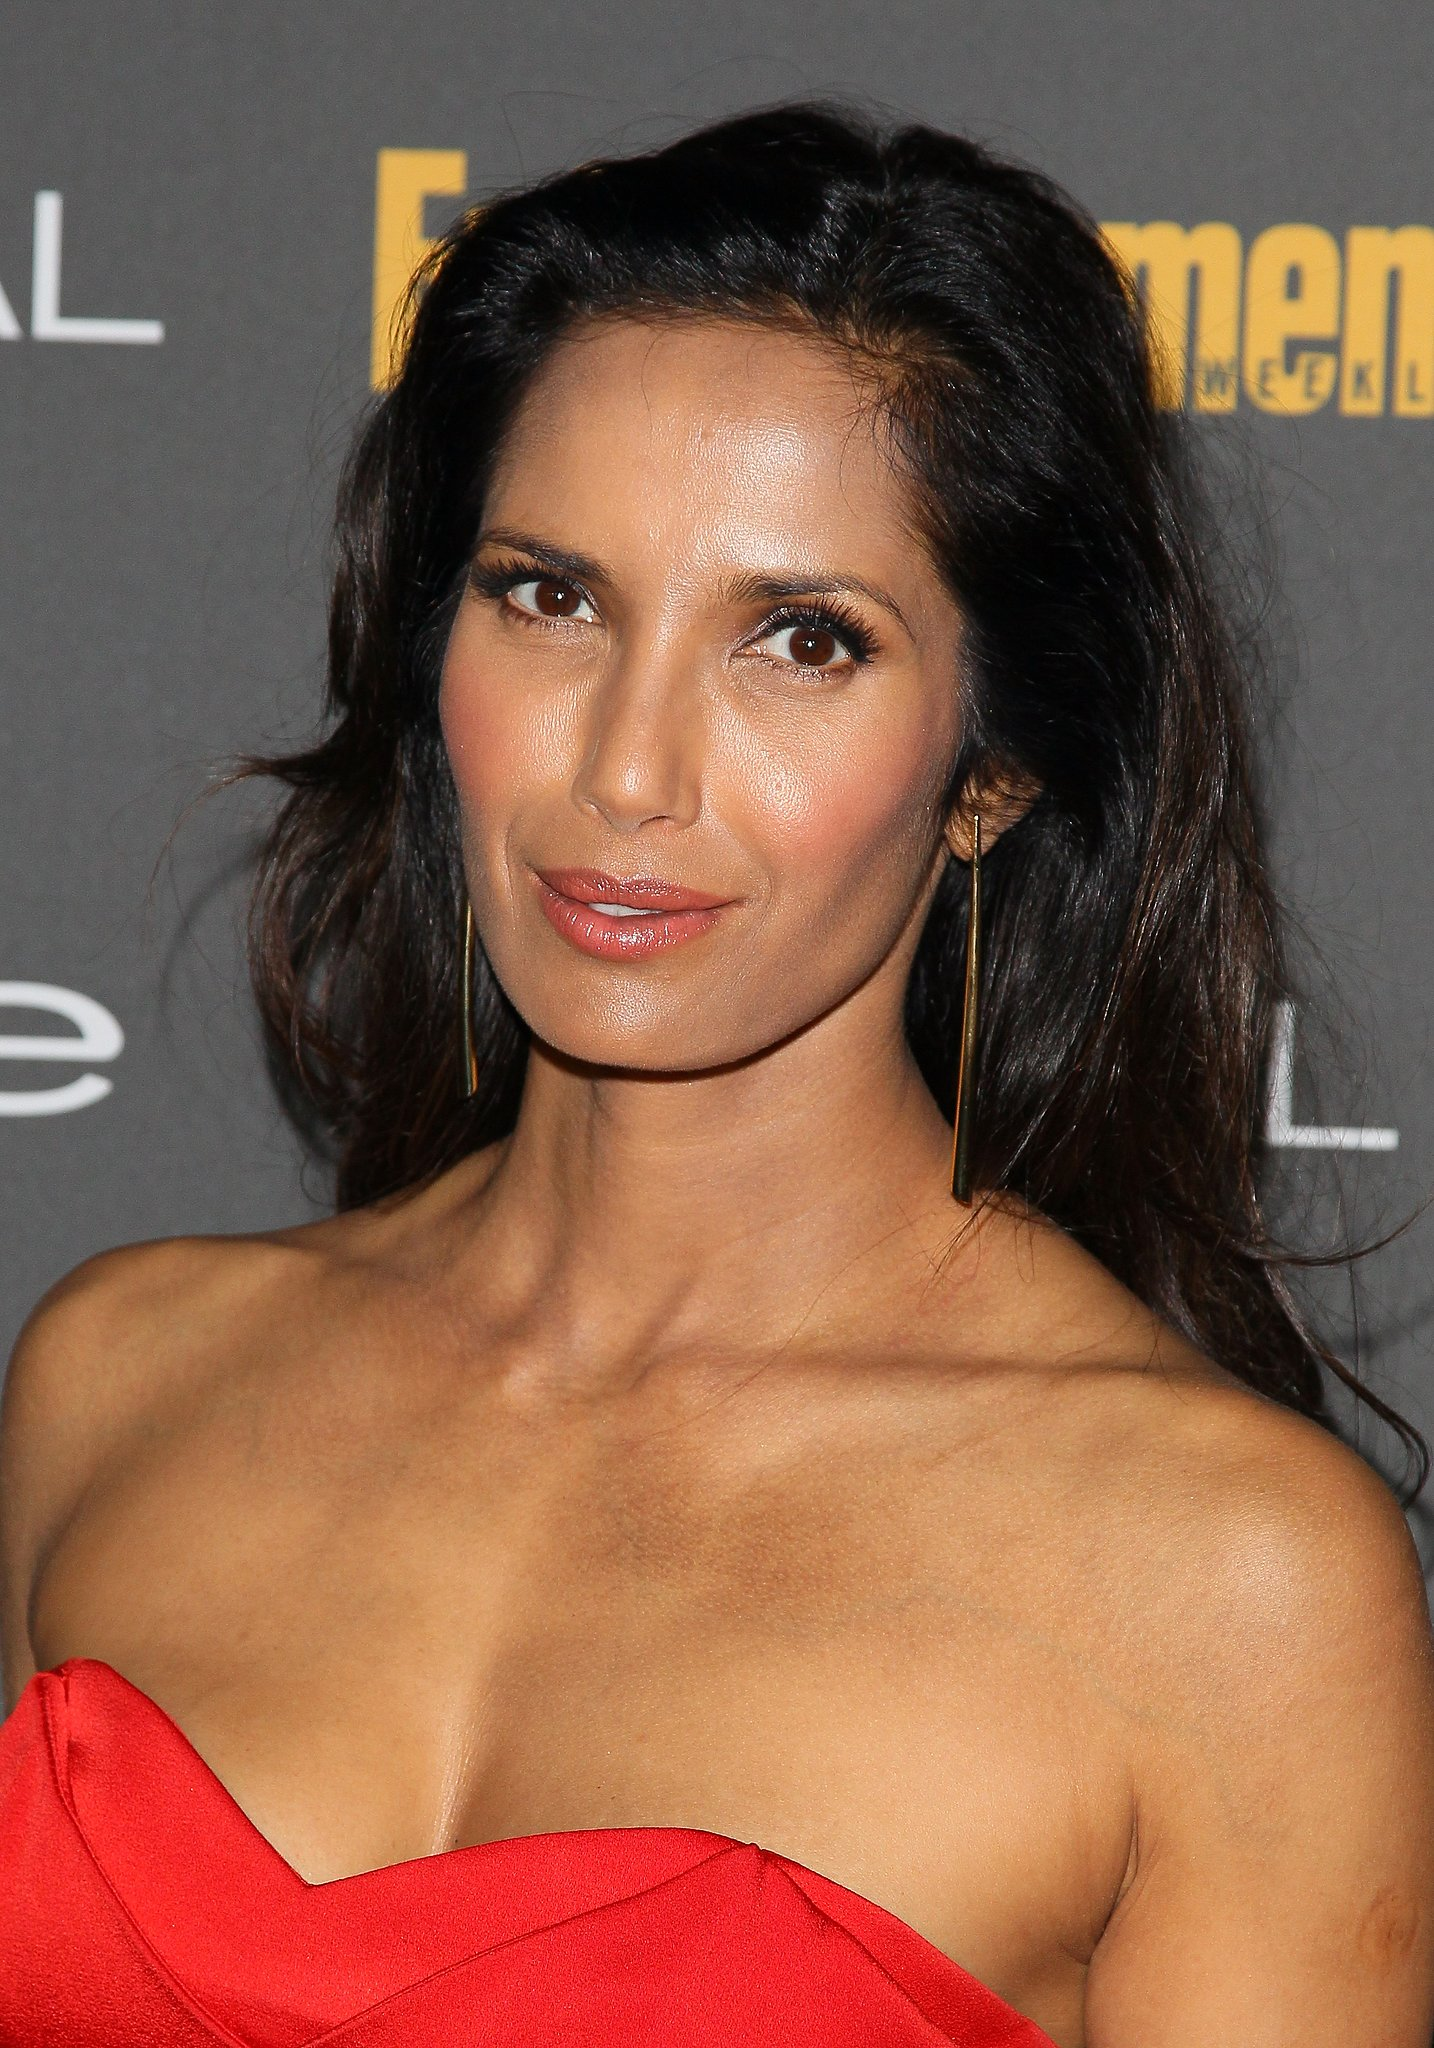 Strategic contouring and mussy hair made for a gorgeous look on Padma Lakshmi at Entertainment Weekly's pre-Emmys party.